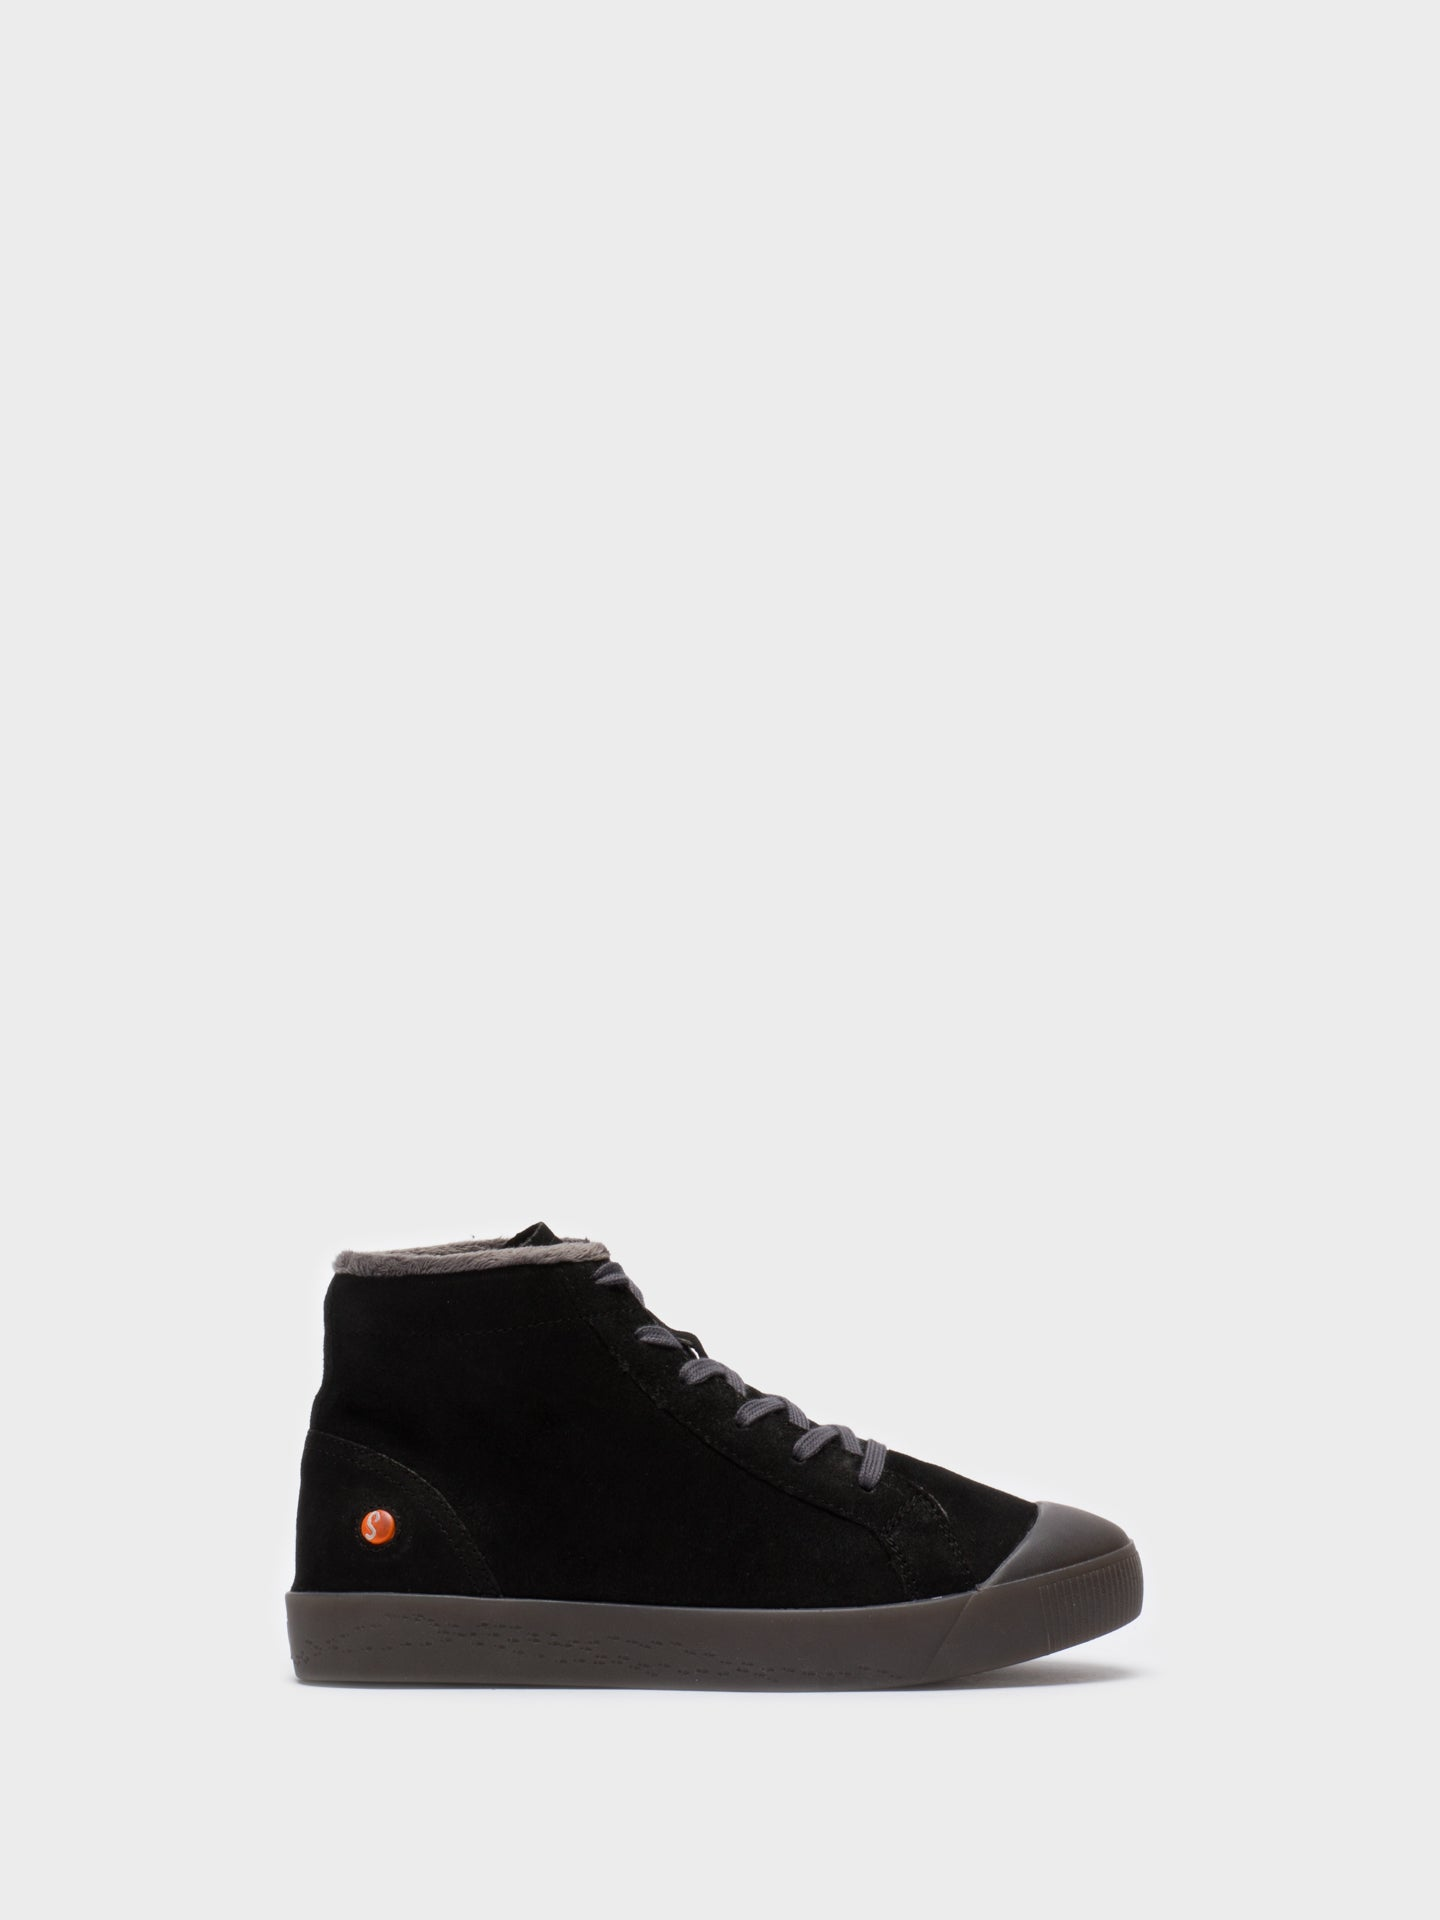 SOFTINOS Black Leather Hi-Top Sneakers